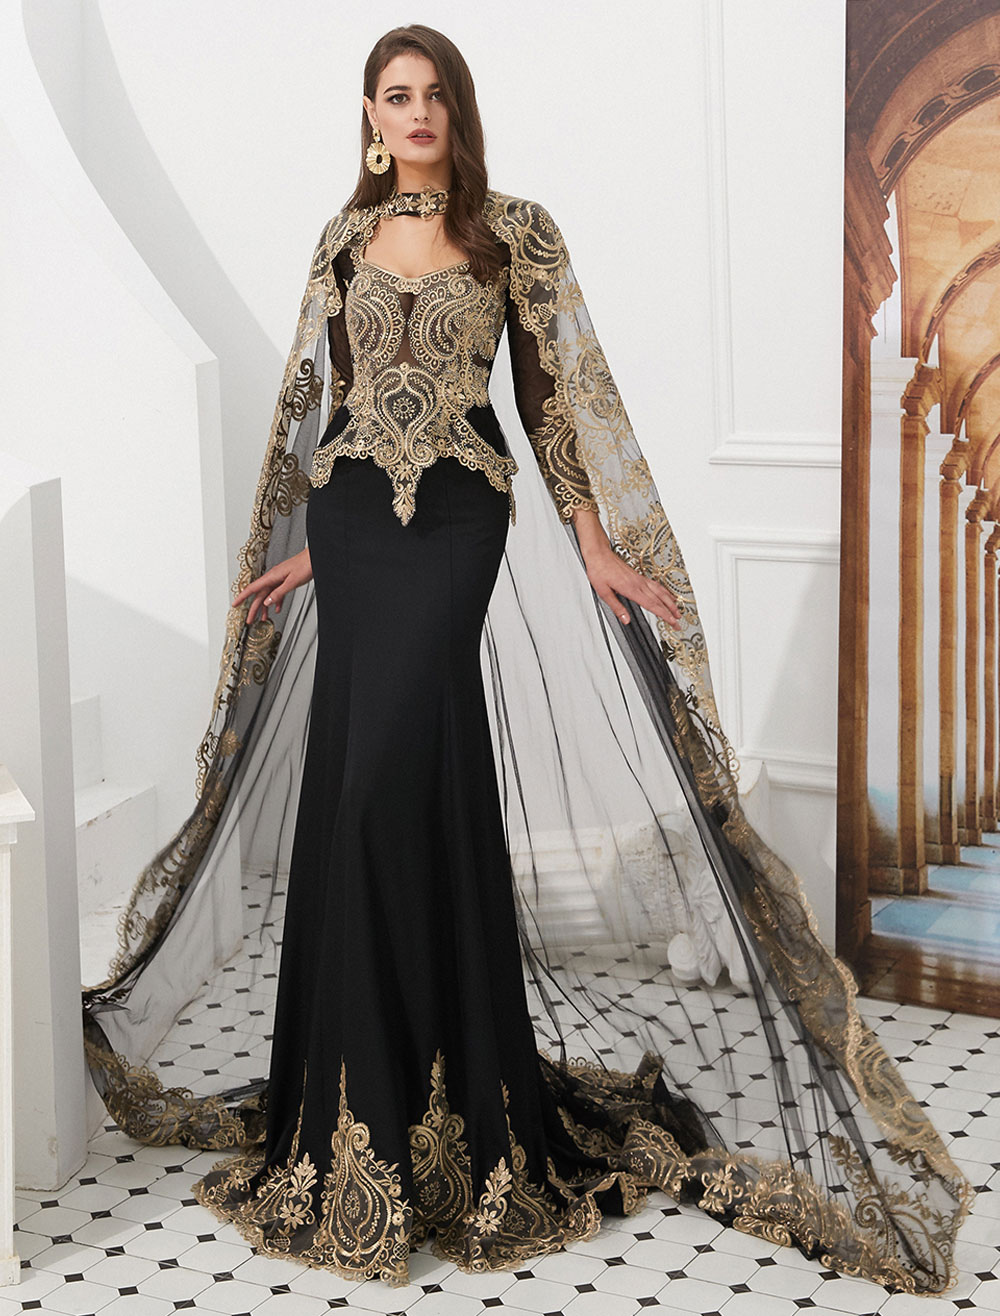 c5765abfa76 Luxury Evening Dresses Embroidered Beaded Queen Anneneck Long Sleeve Formal  Gowns With Cloak-No.